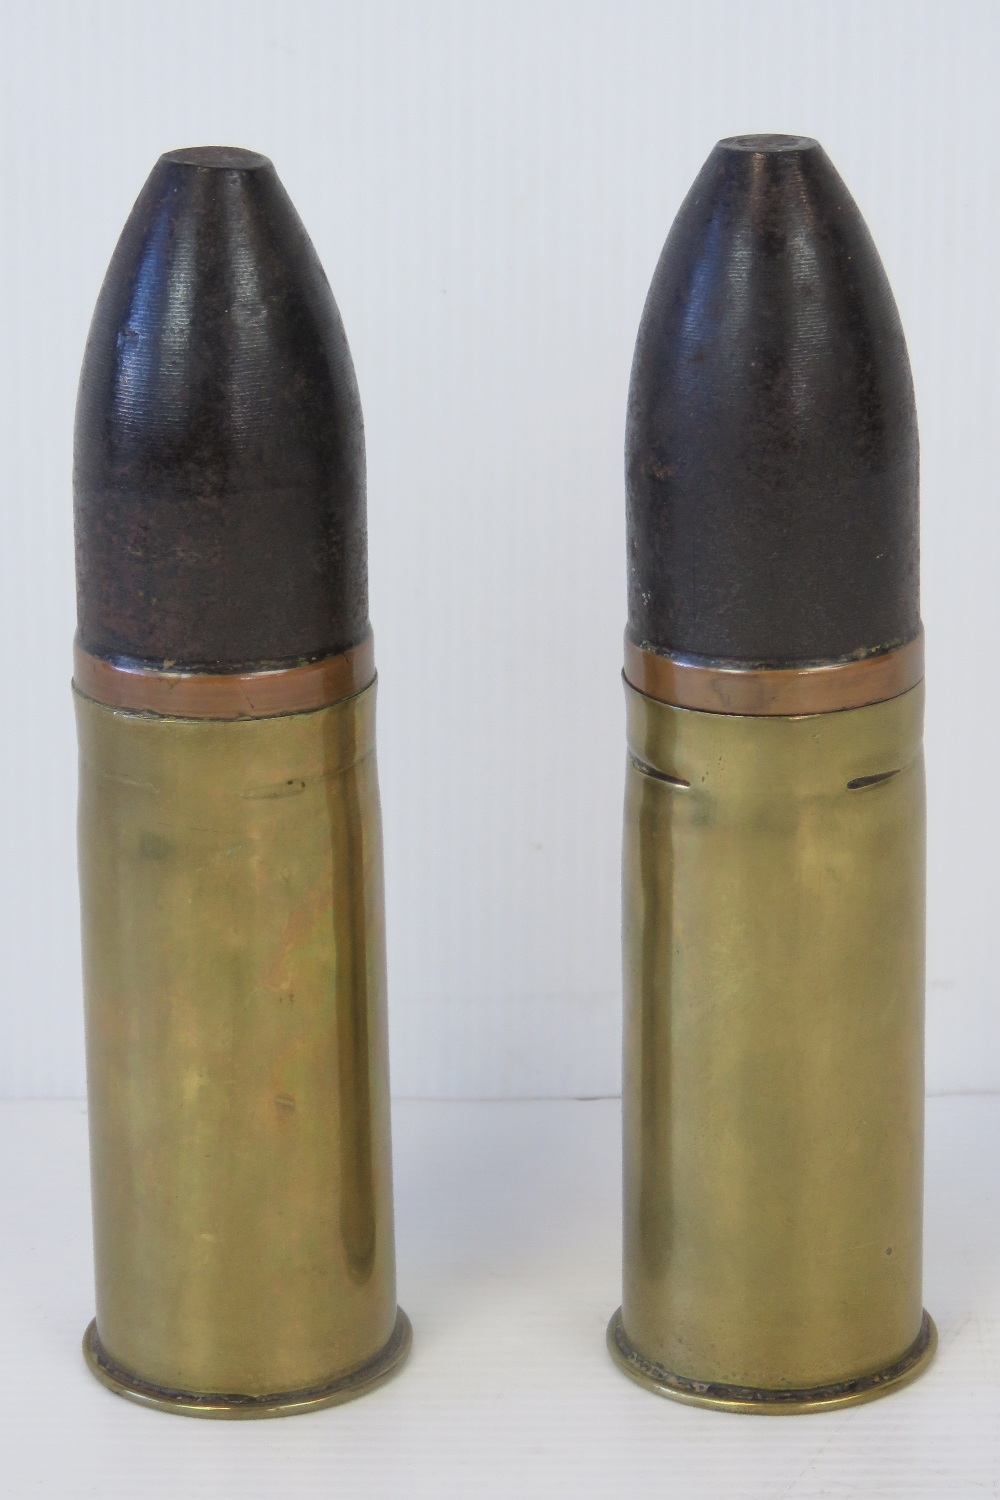 Lot 36 - Two WWI ordnance shells, one stamped June 1918 Sp255 119A and the other 1904 116, 16cm high.